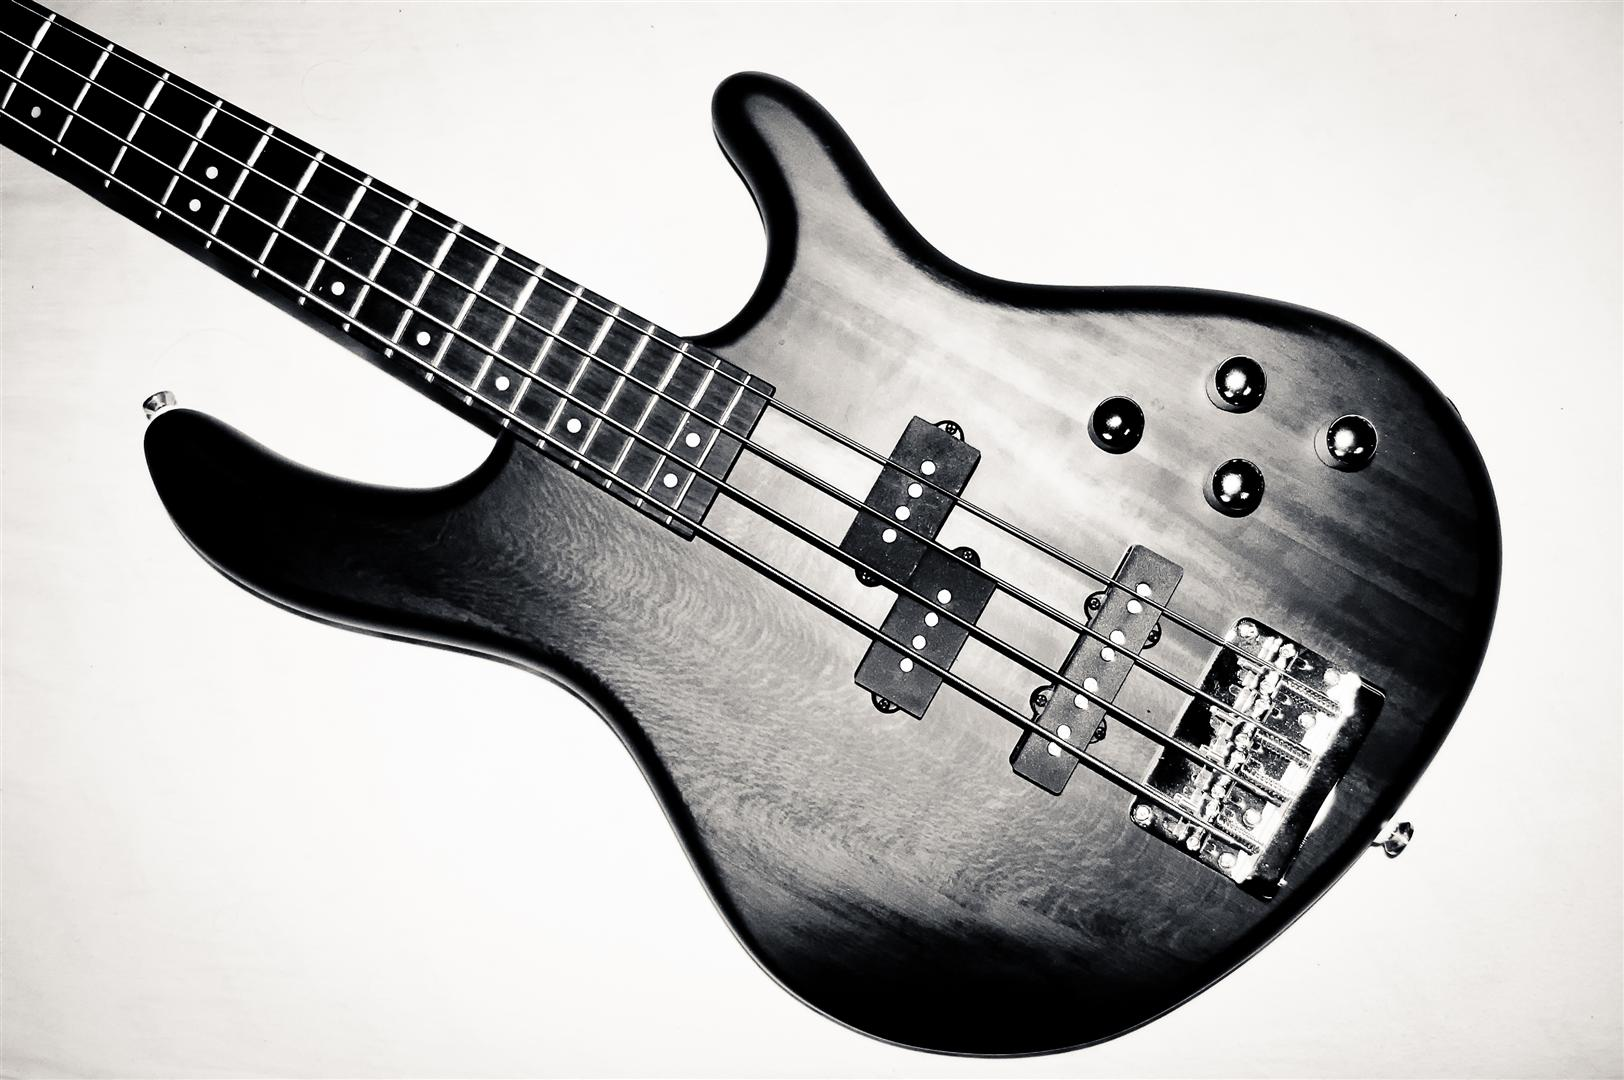 Bass Guitar by daenuprobst